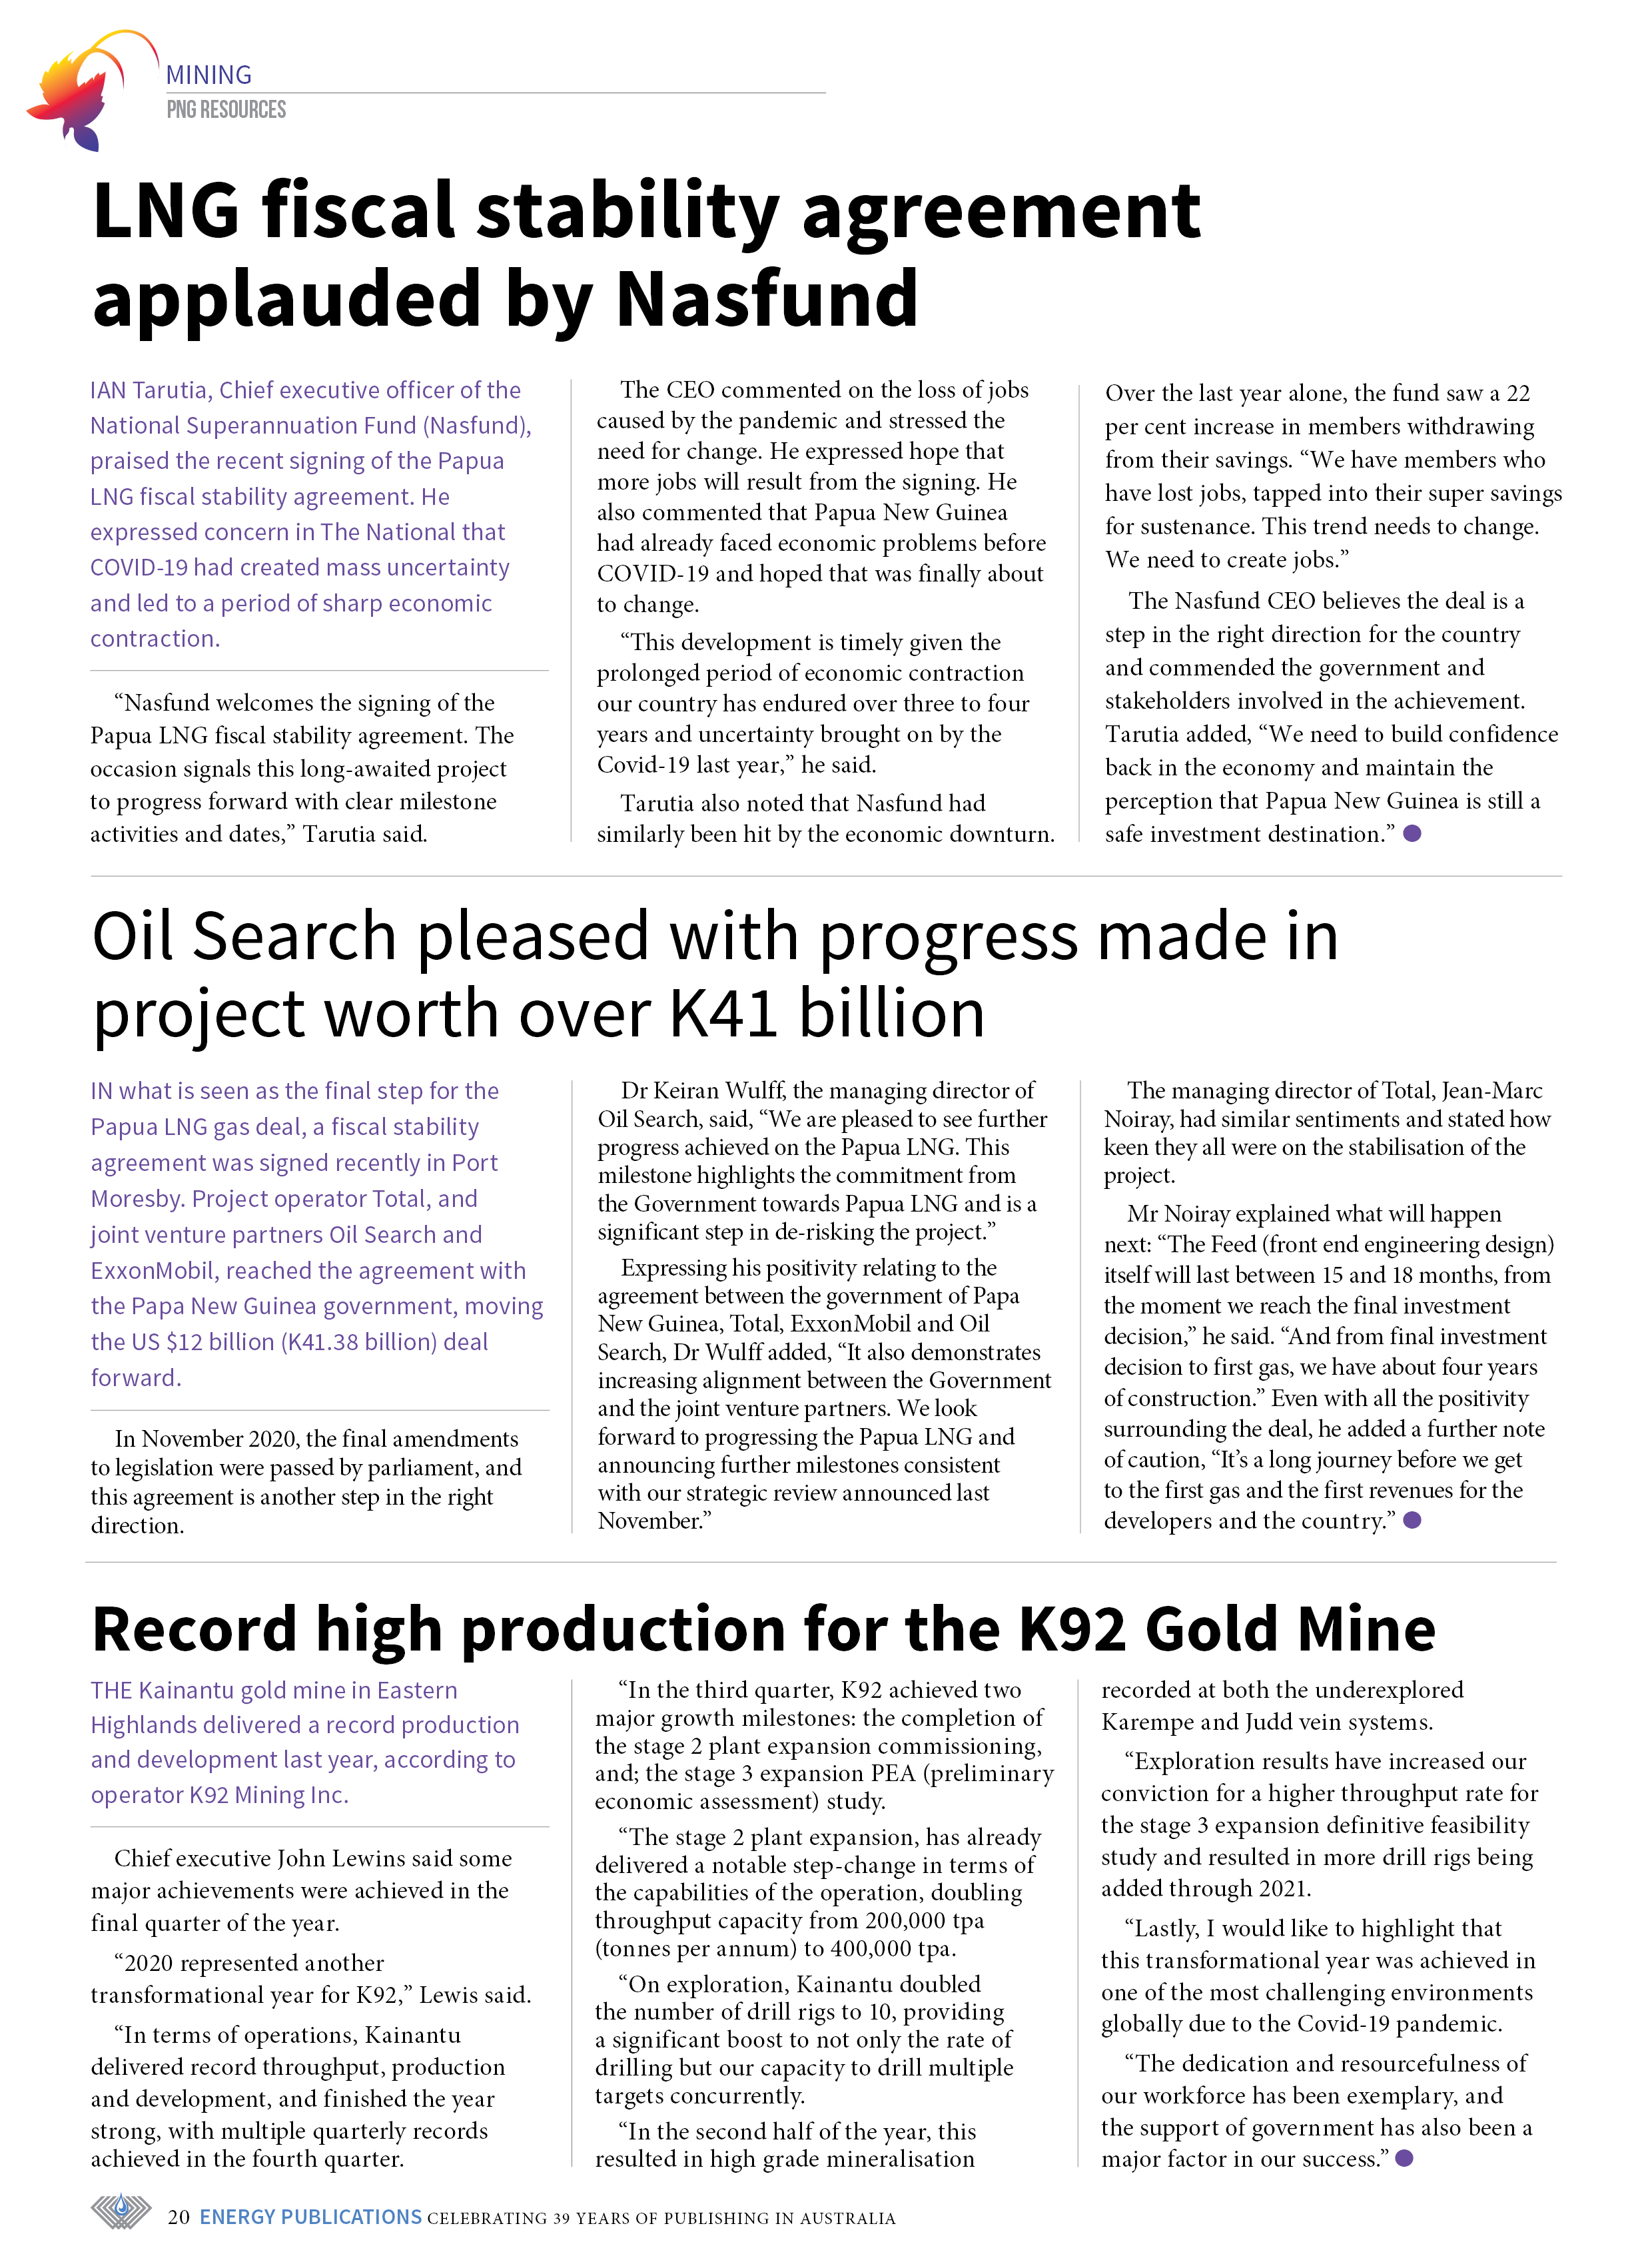 PNG Resources Q1 2021 – Page 22